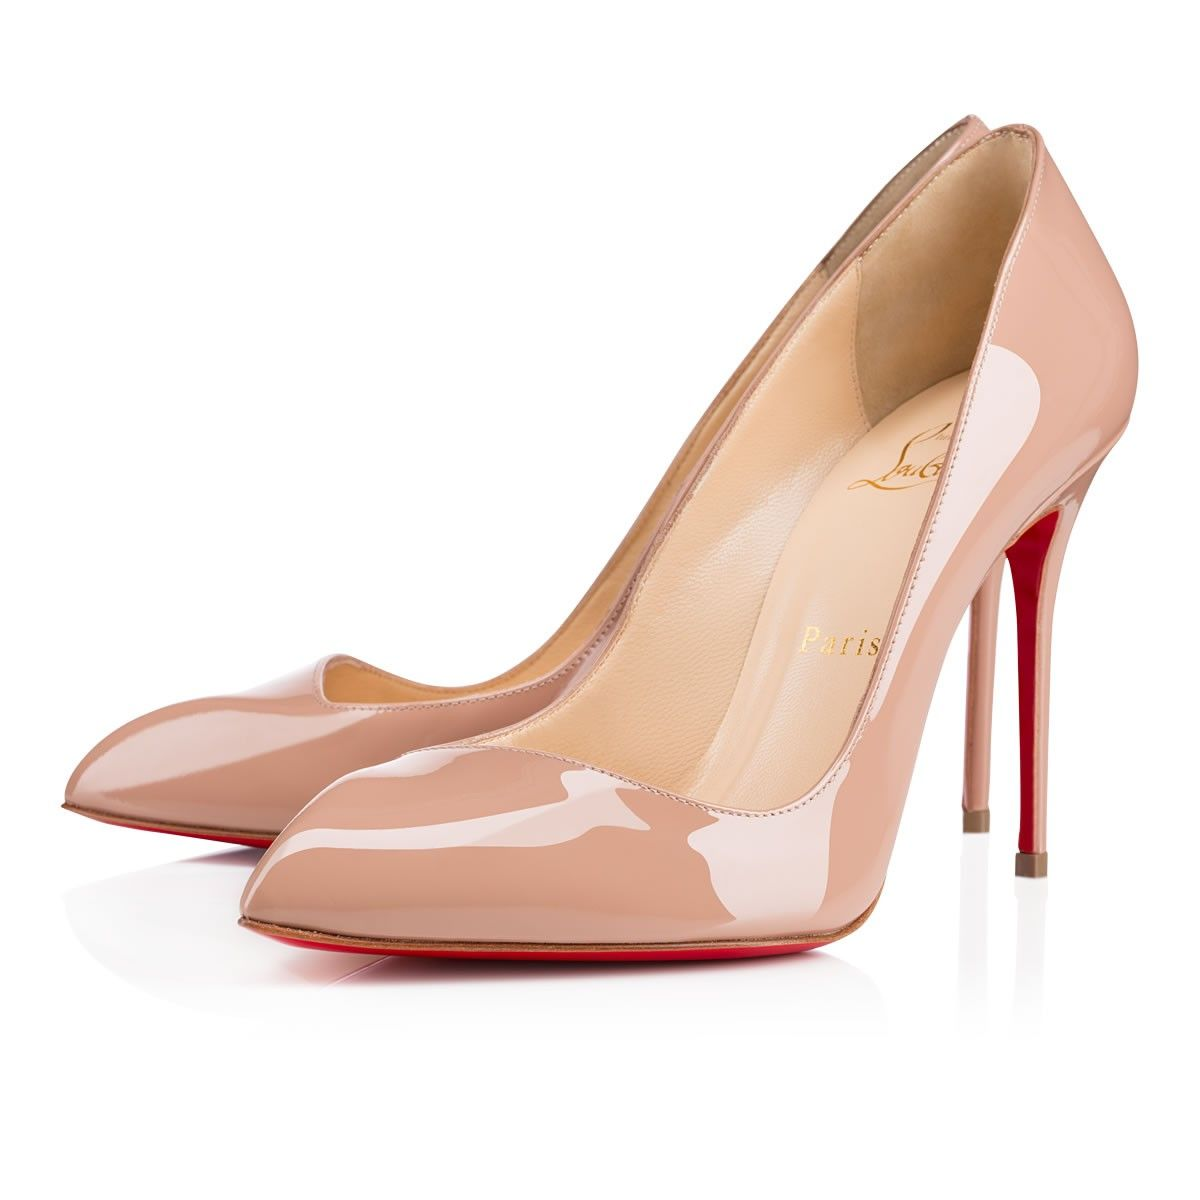 30781ad2b16 Corneille 100mm Nude Patent Leather | Kim's Dresses | Stiletto heels ...